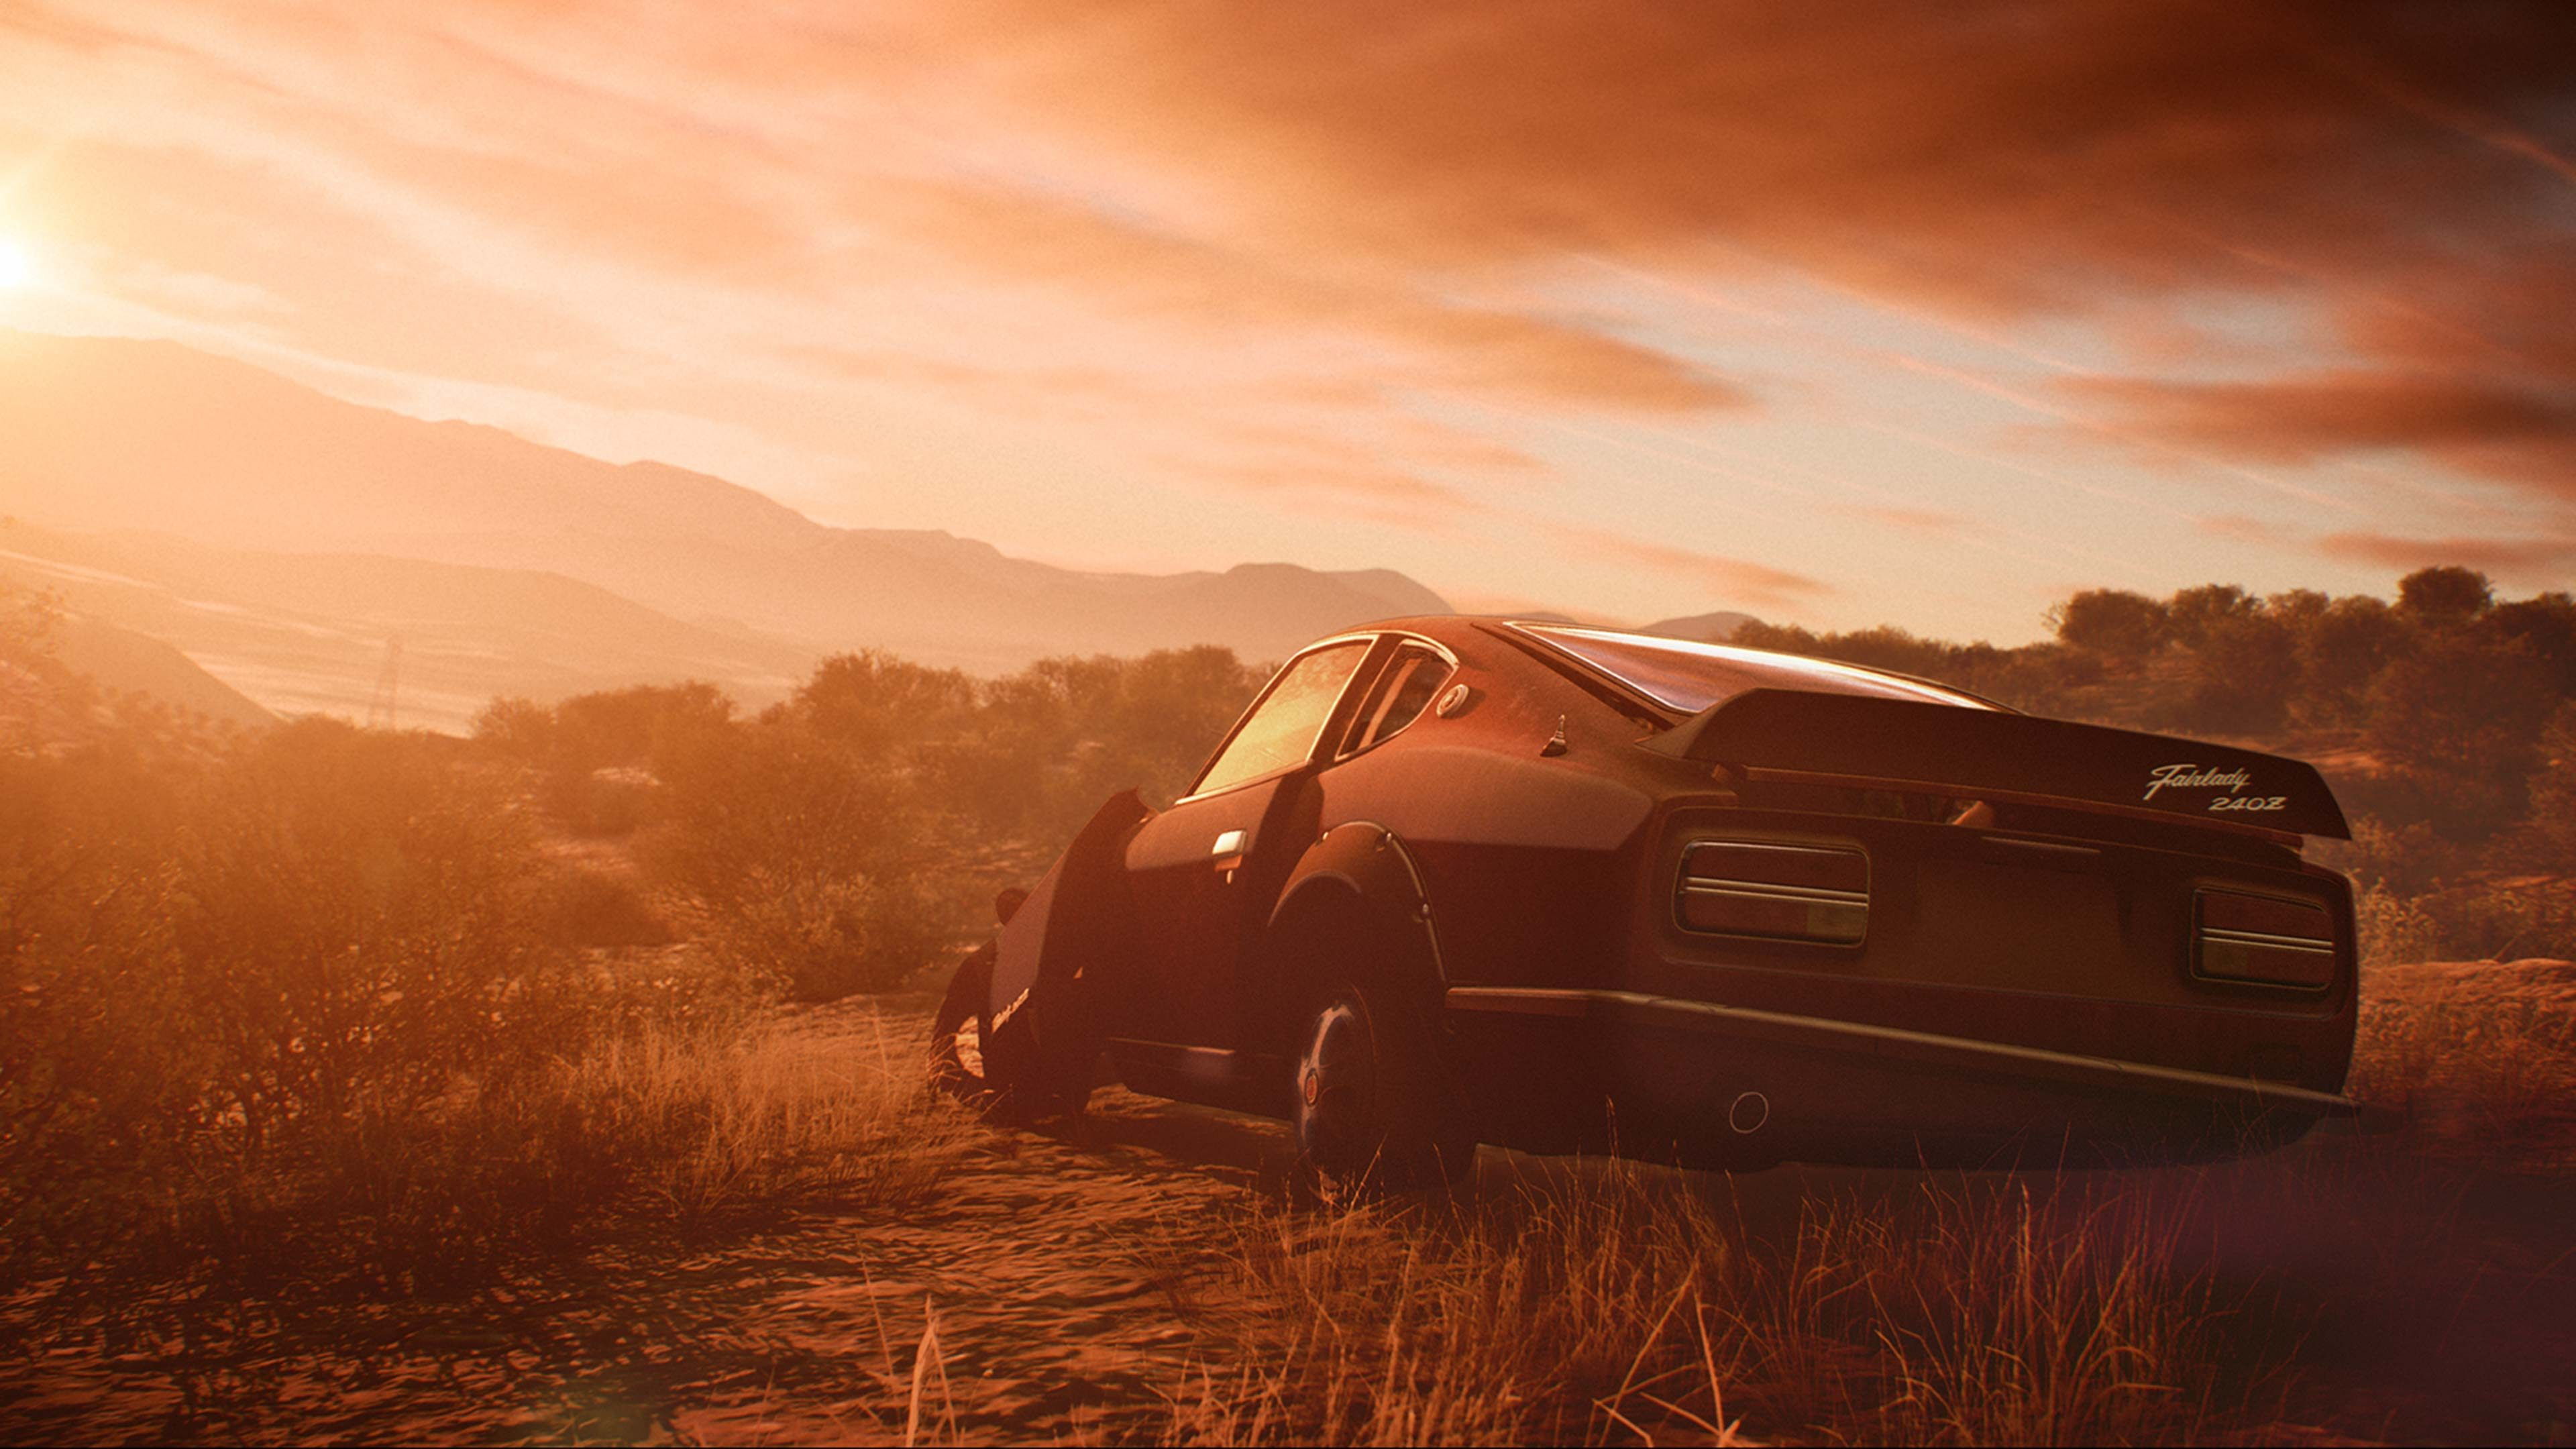 need for speed payback wallpapers high quality download free